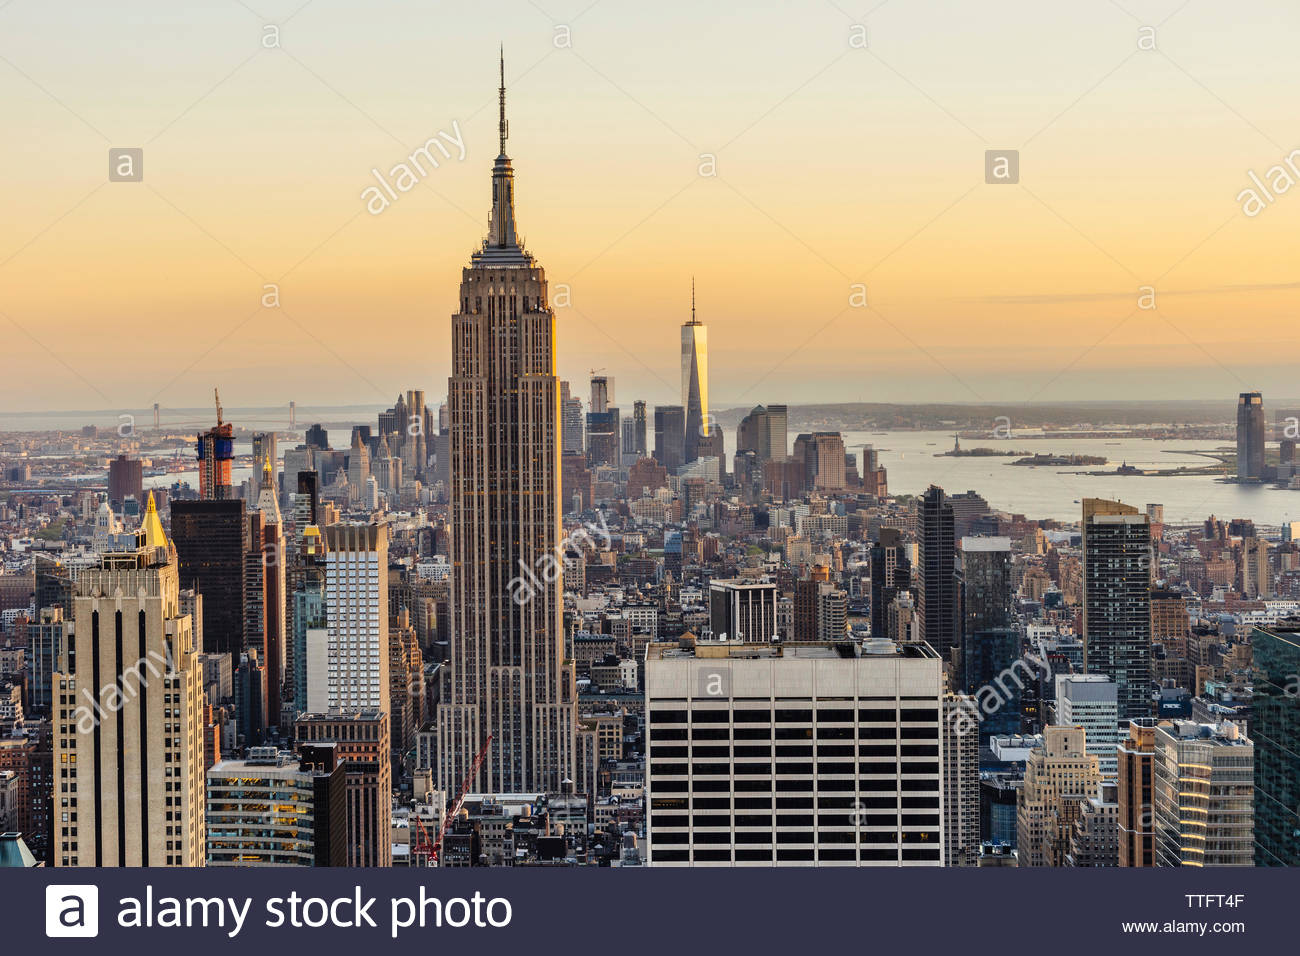 Empire State Building and One World Trade Center in city against sky during sunset - Stock Image